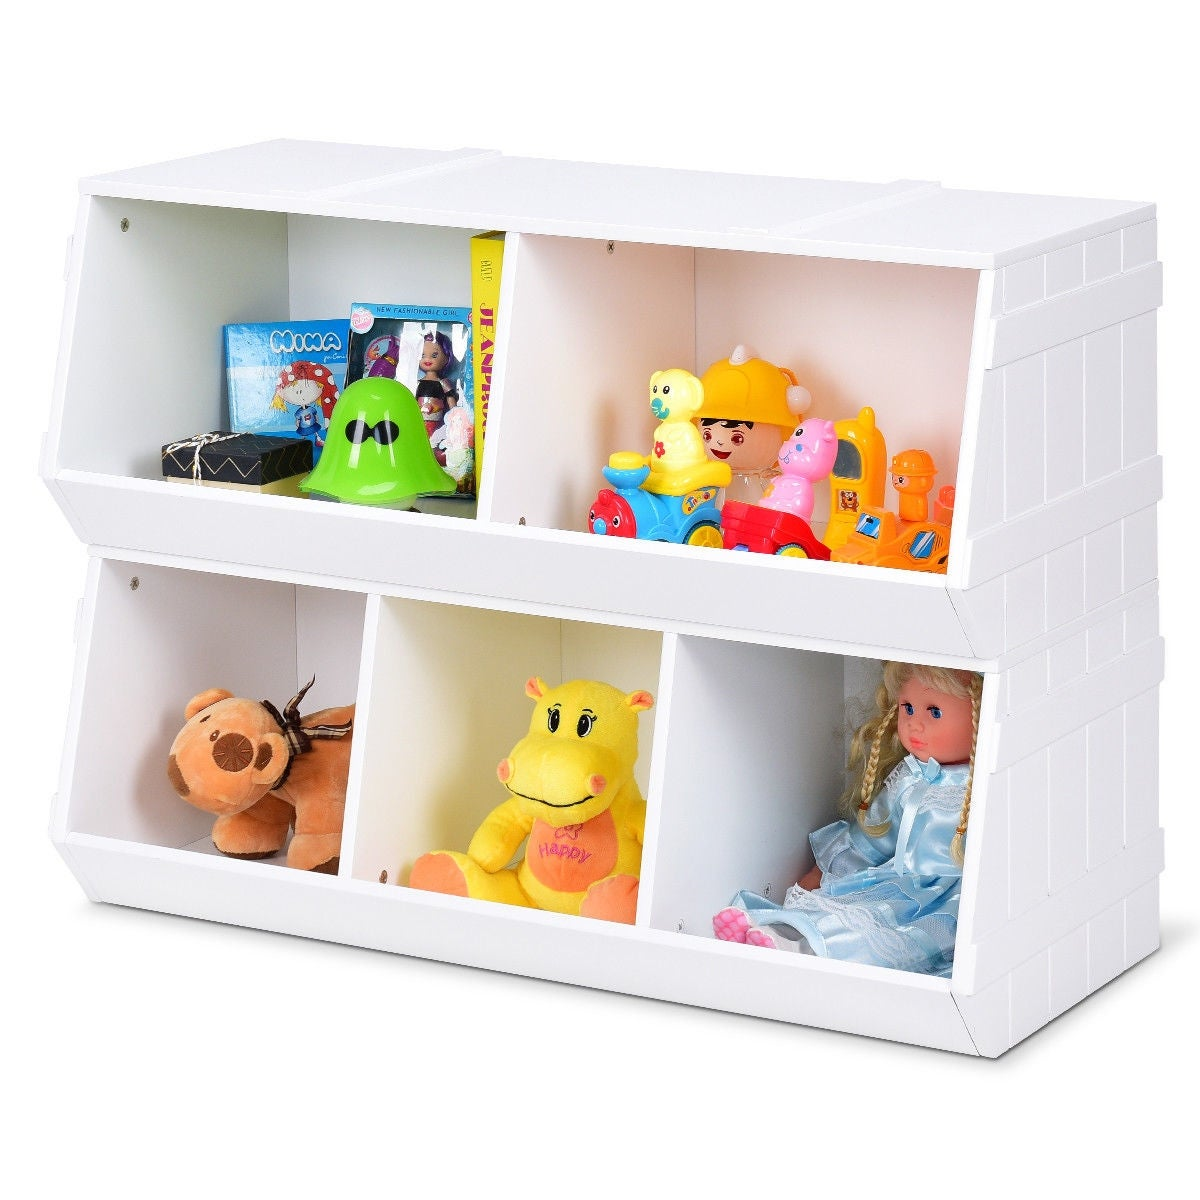 Gymax Kids Toy Box Storage Cabinet Flexible Stackable Bookcase Shelf On Sale Overstock 23571749